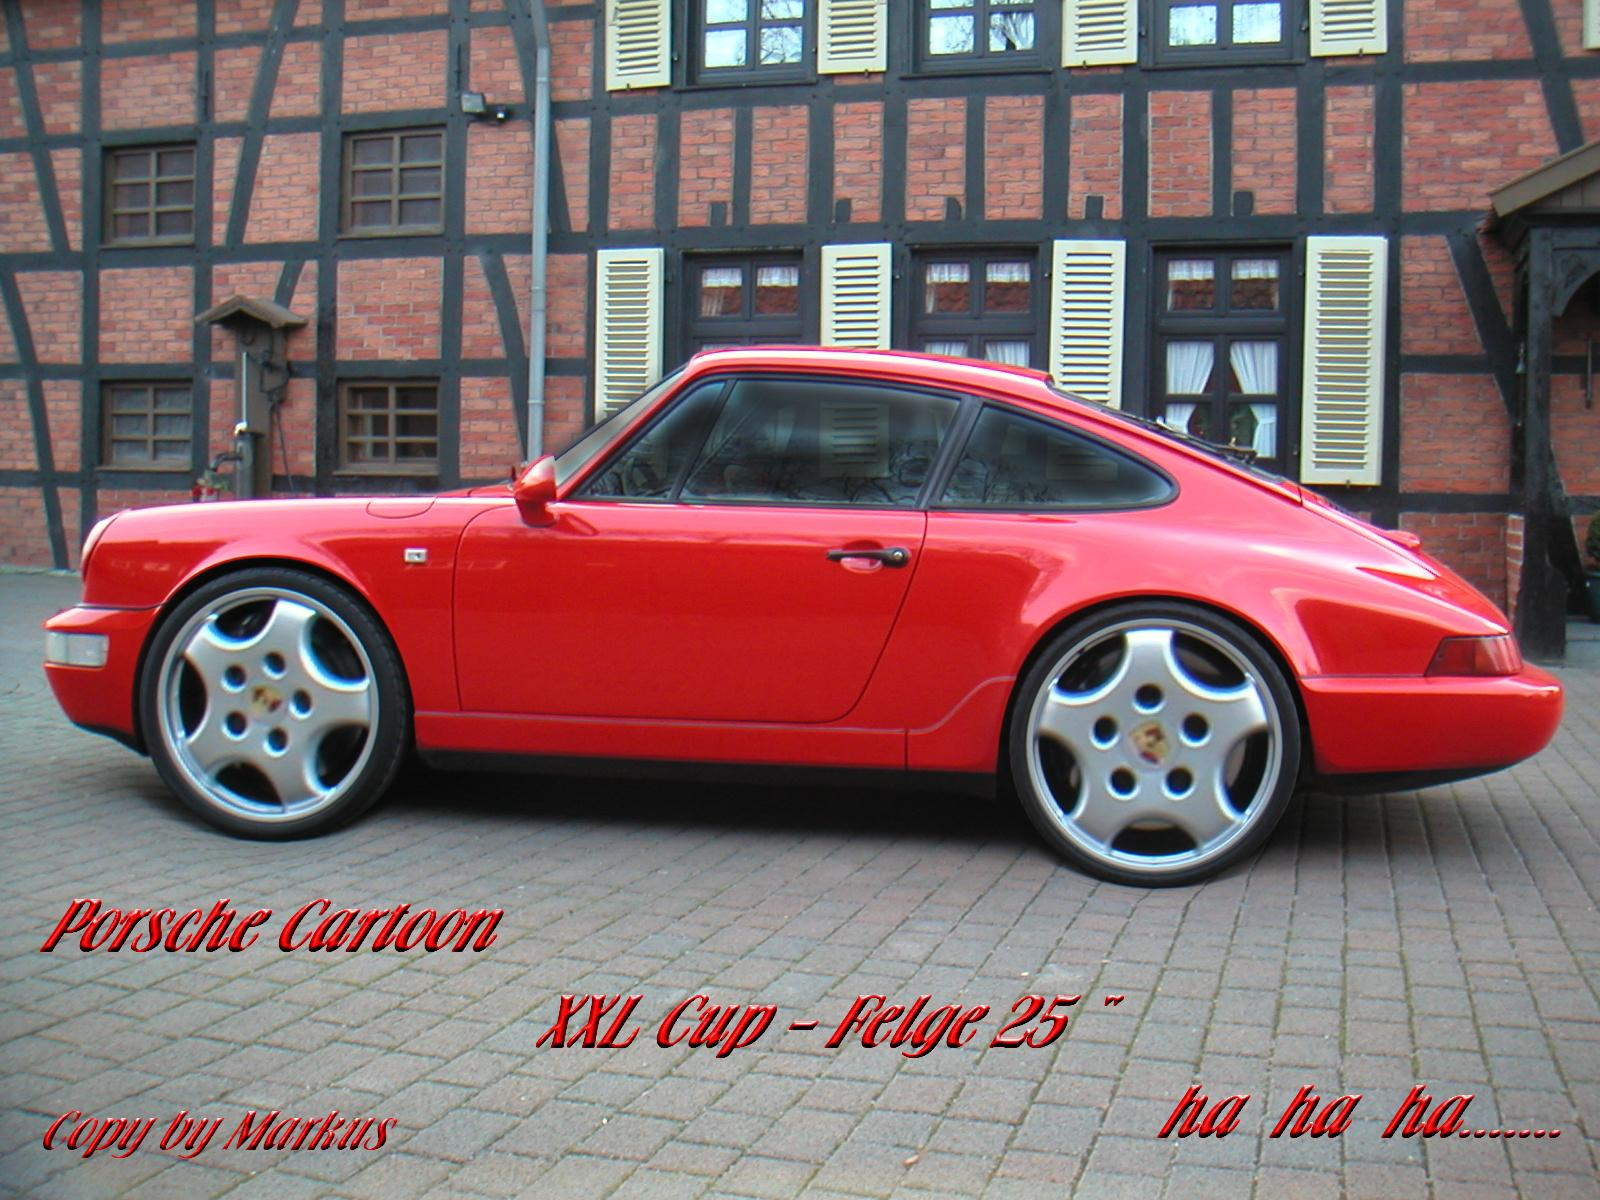 mein porsche 964 carrera xxl cup felge was f r eine. Black Bedroom Furniture Sets. Home Design Ideas